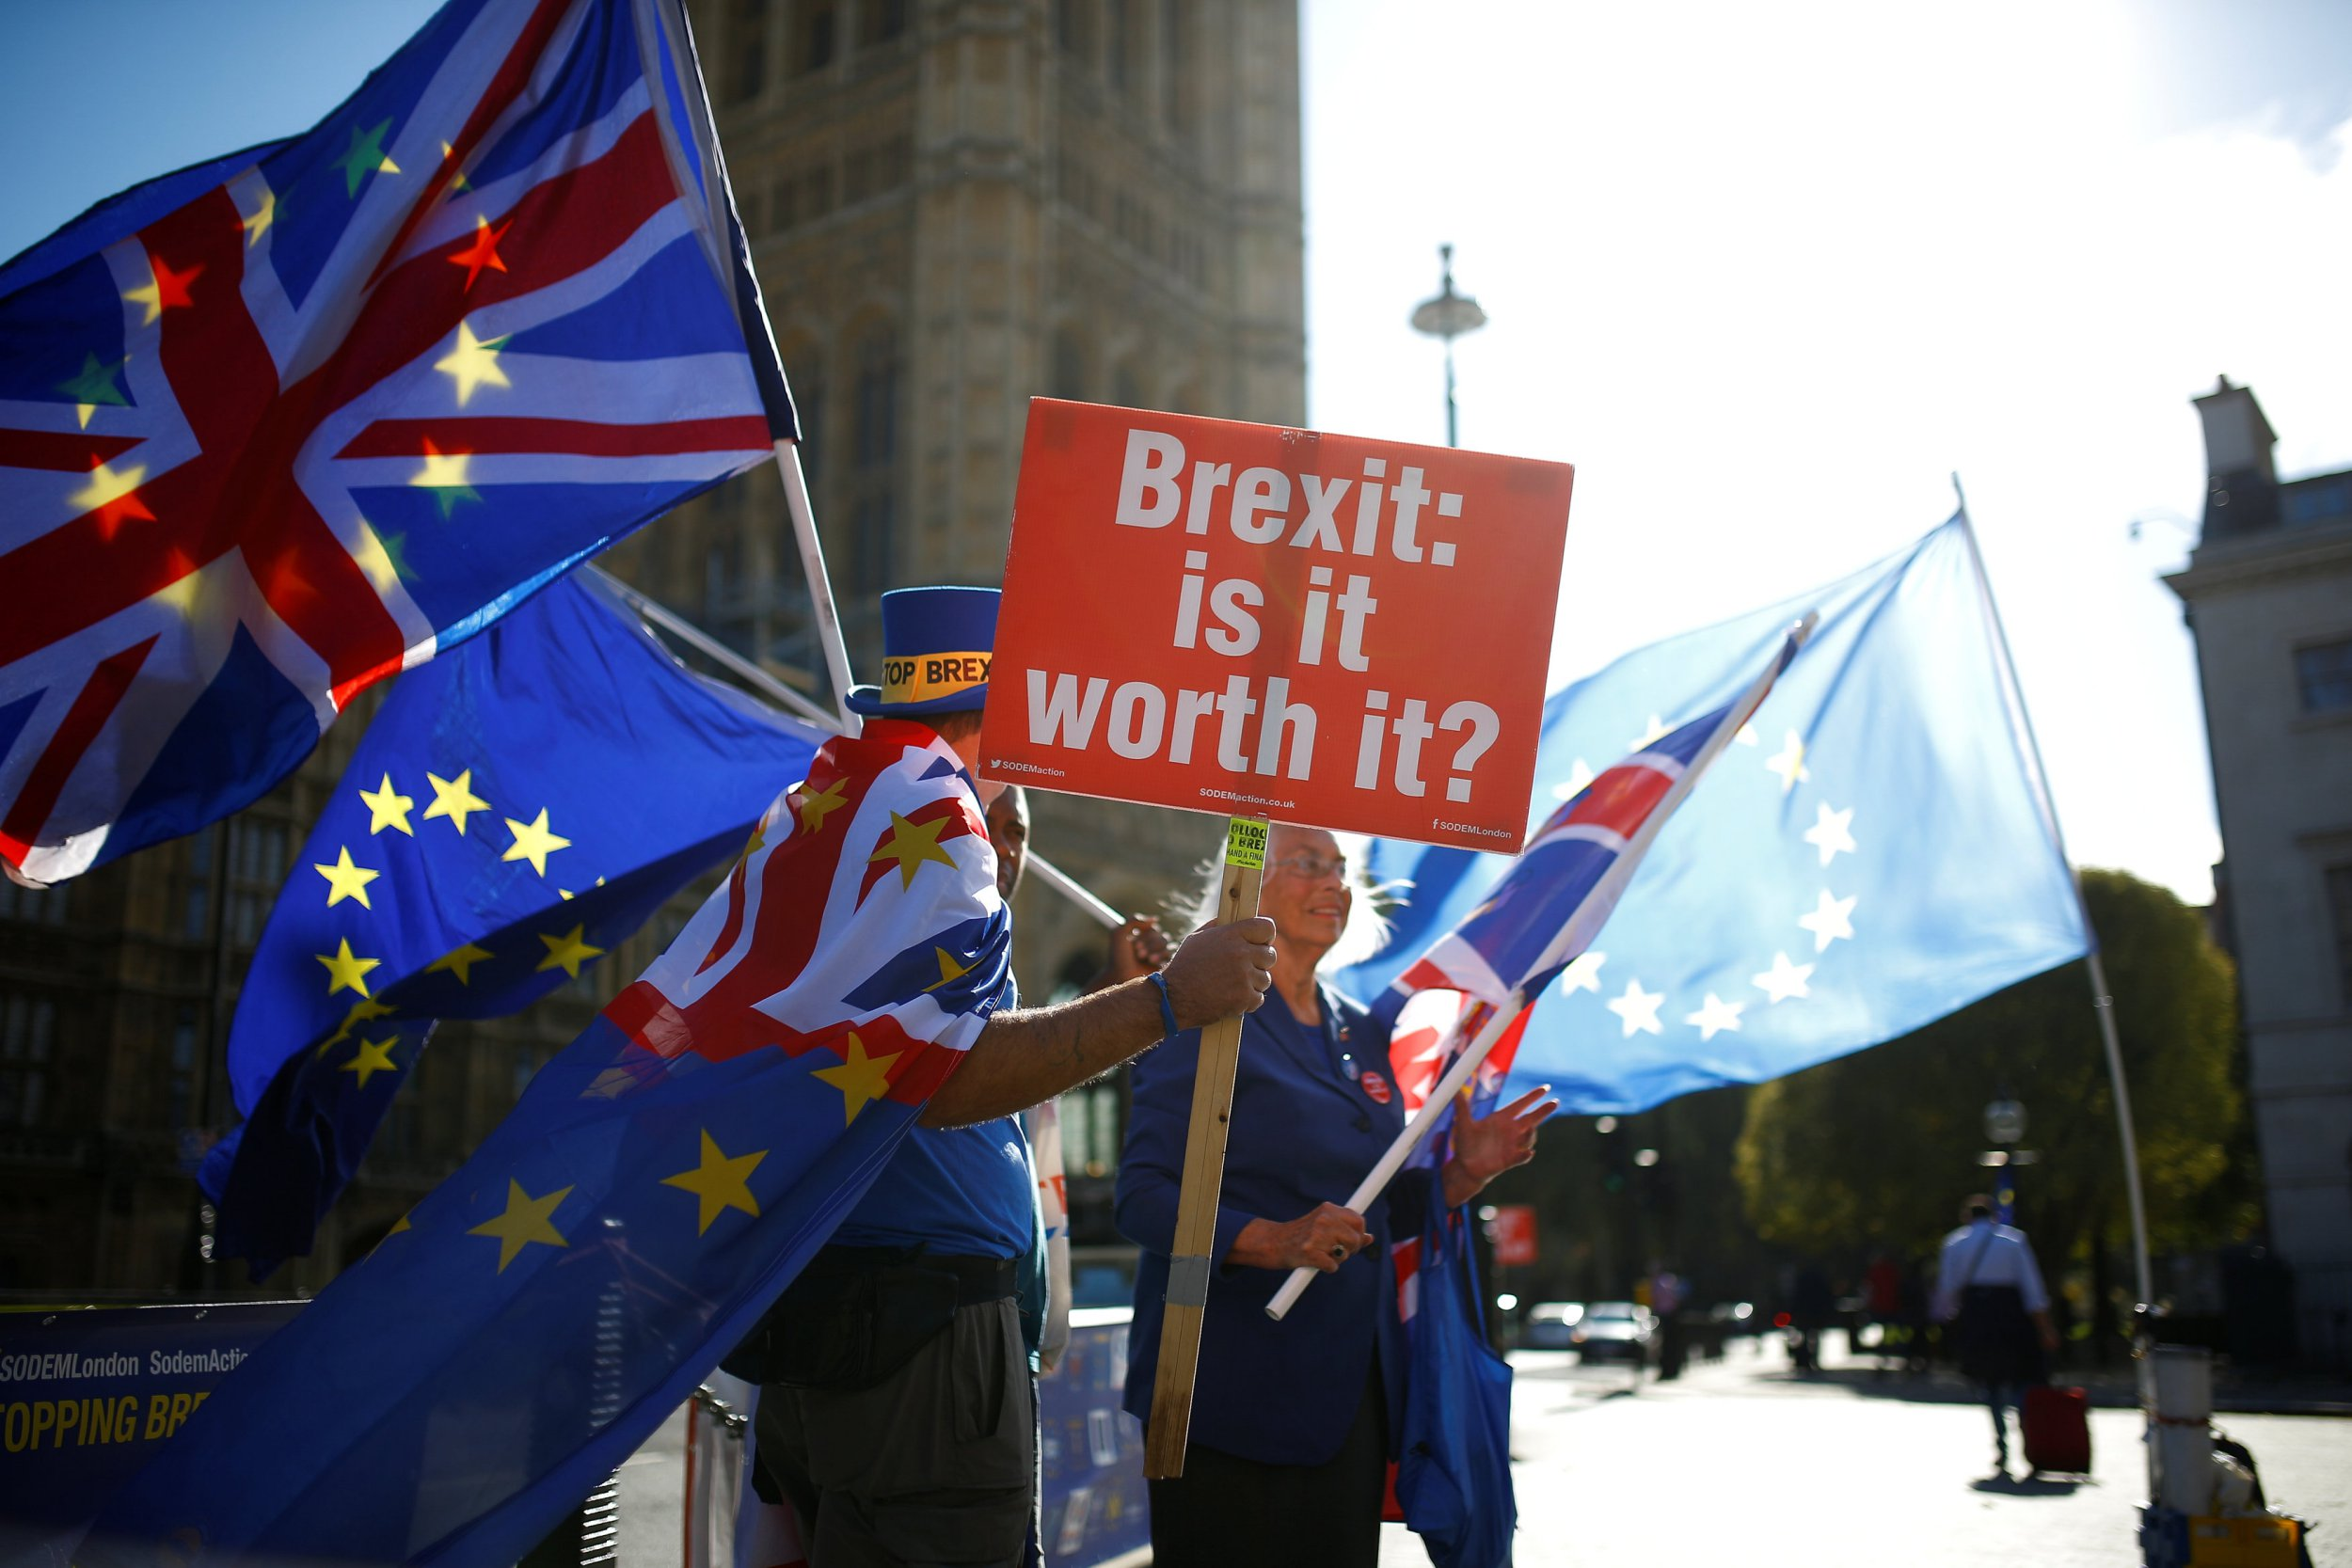 Anti-brexit protestors wave flags outside the Houses of Parliament in London, Britain, October 11, 2018. REUTERS/Henry Nicholls